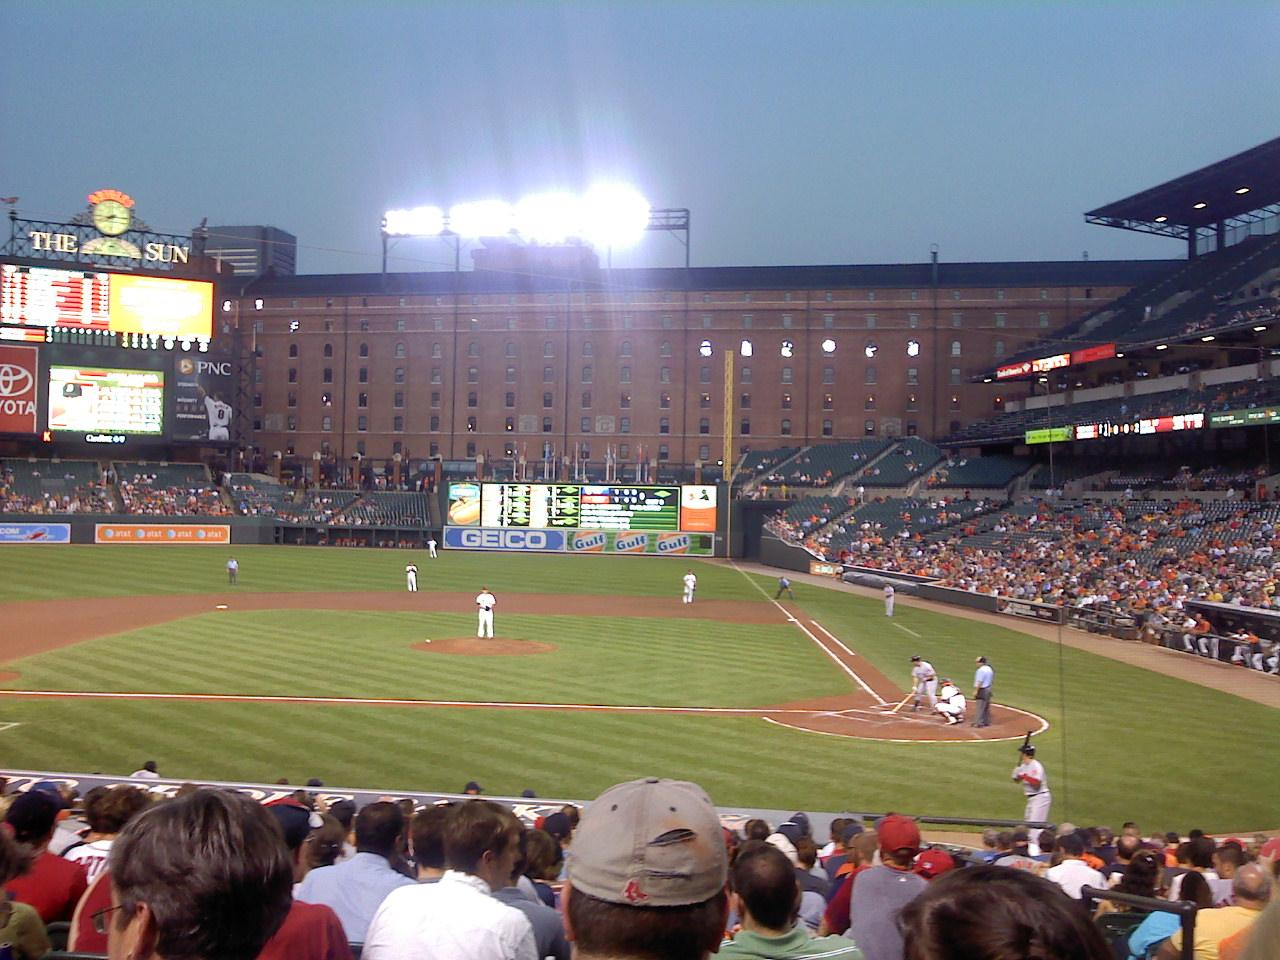 Oriole Park at Camden Yards Section 48 Row 19 Seat 1,2,3,4